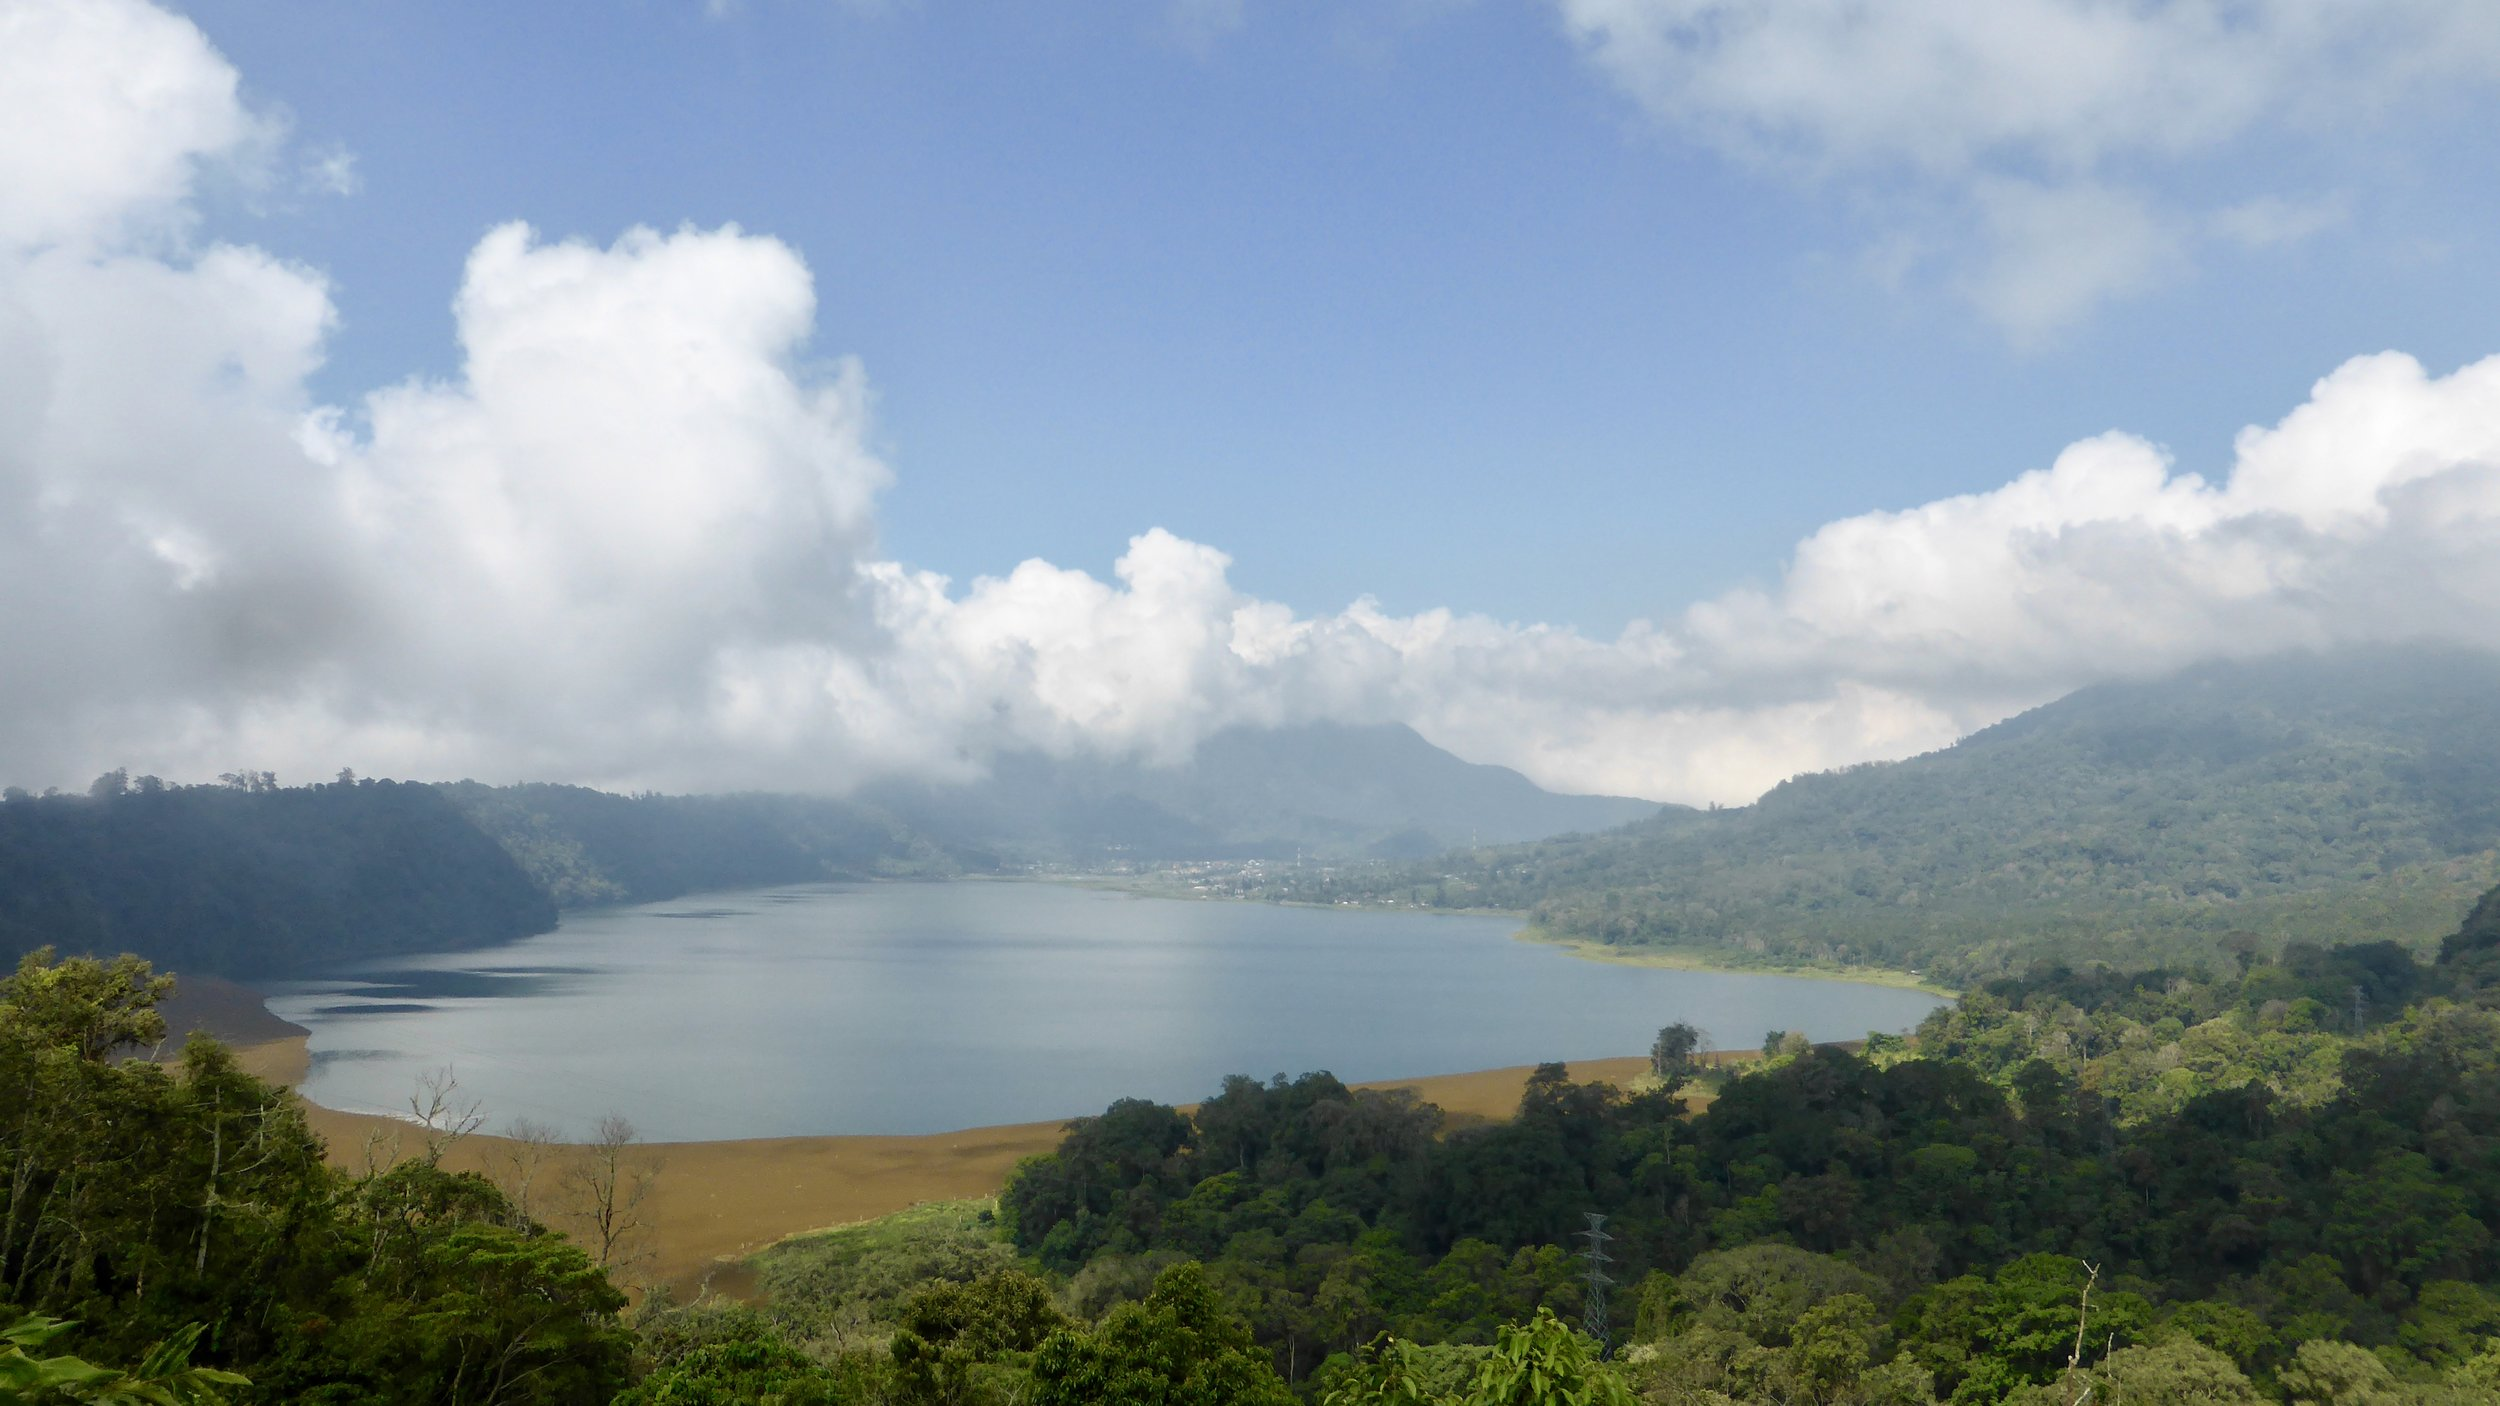 Lake Buyan and Lake Tamblingan are Bali's twin lakes. Here's the first of the former from Gobleg. Bali, Indonesia